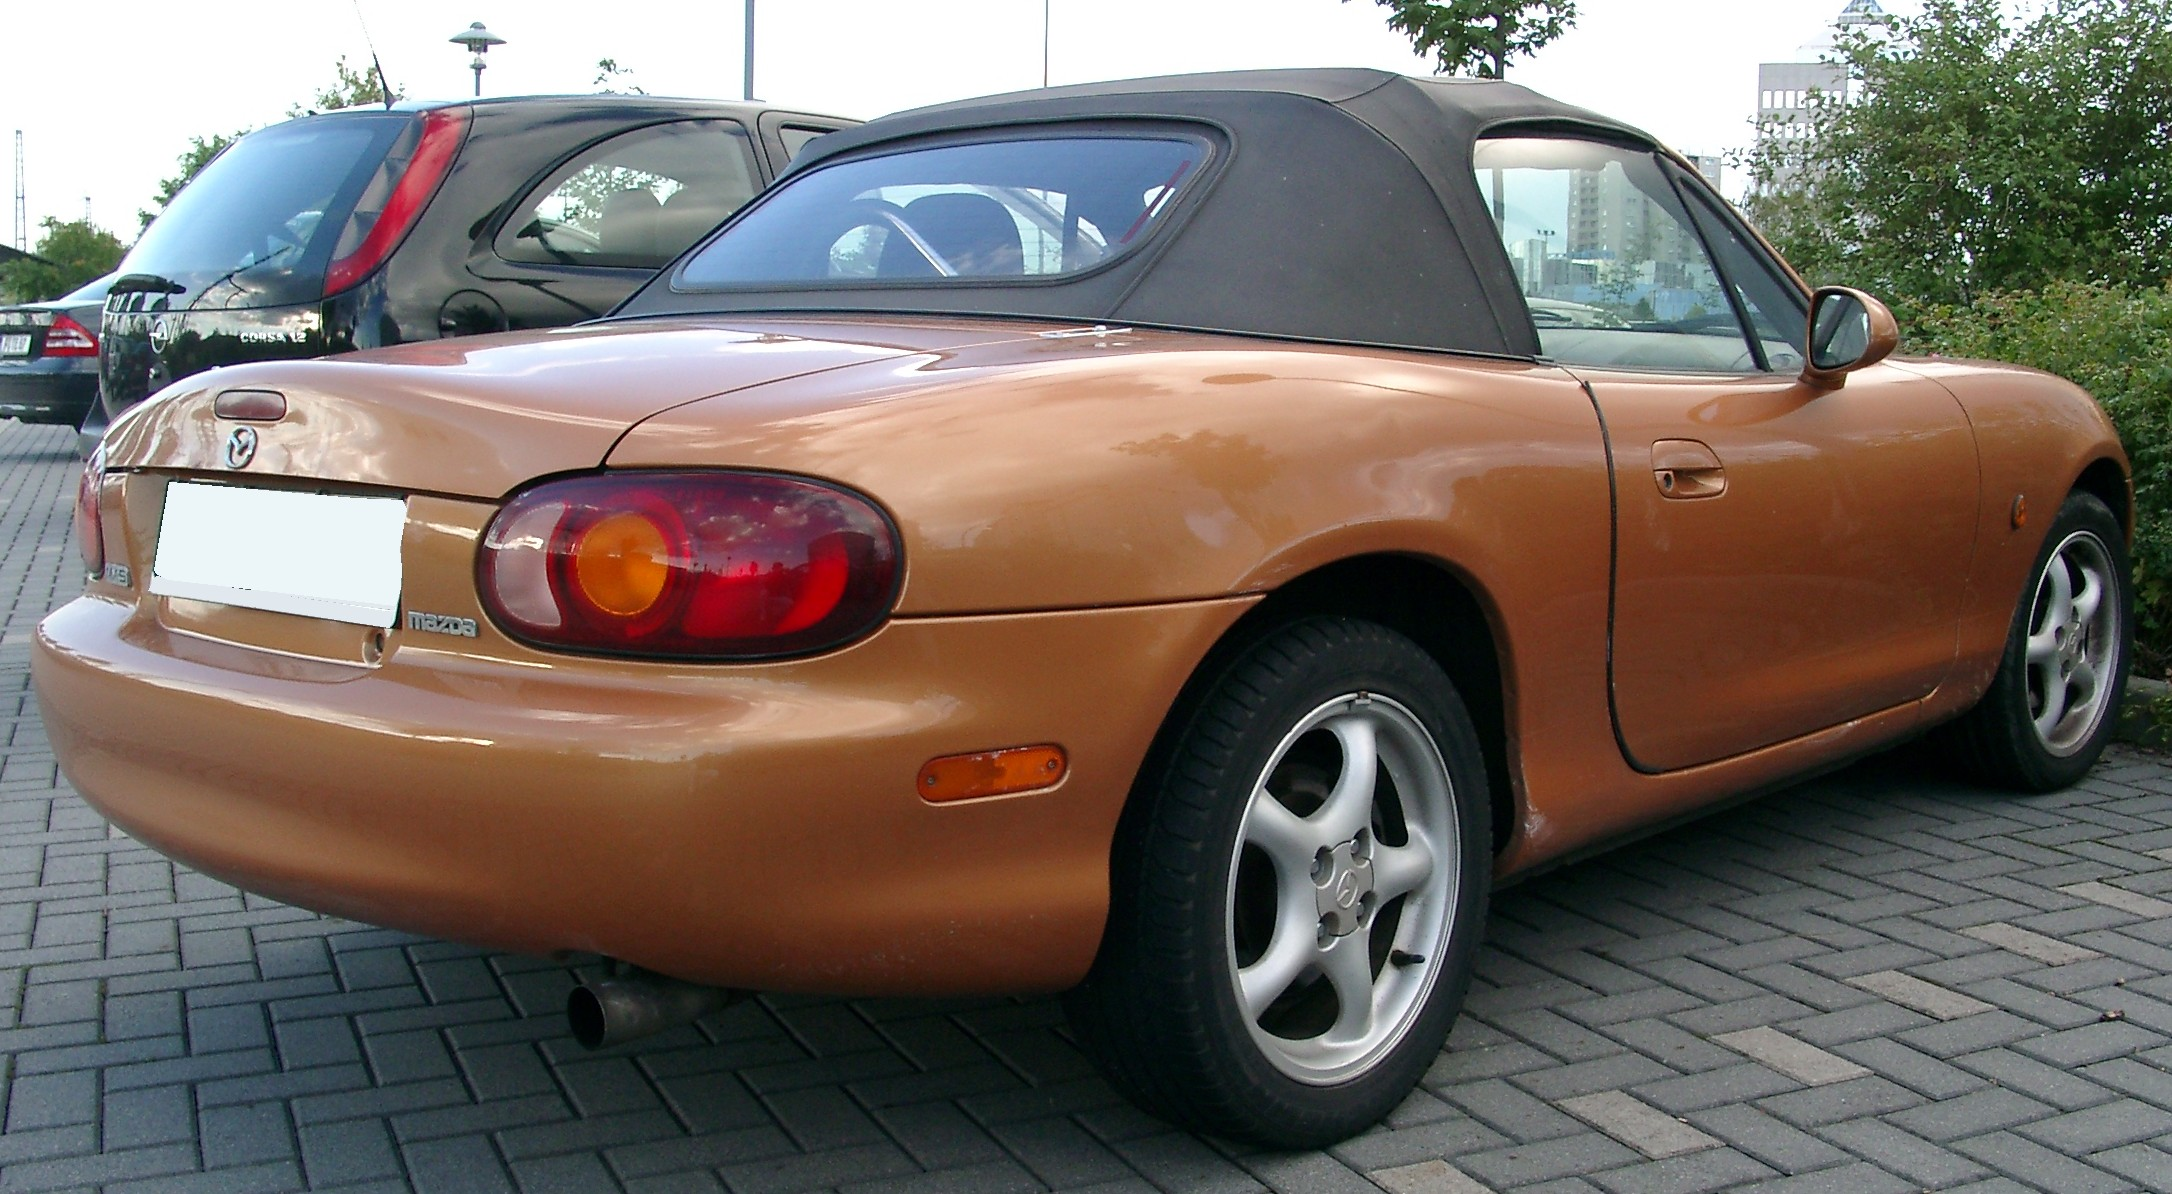 file mazda mx5 rear wikimedia commons. Black Bedroom Furniture Sets. Home Design Ideas